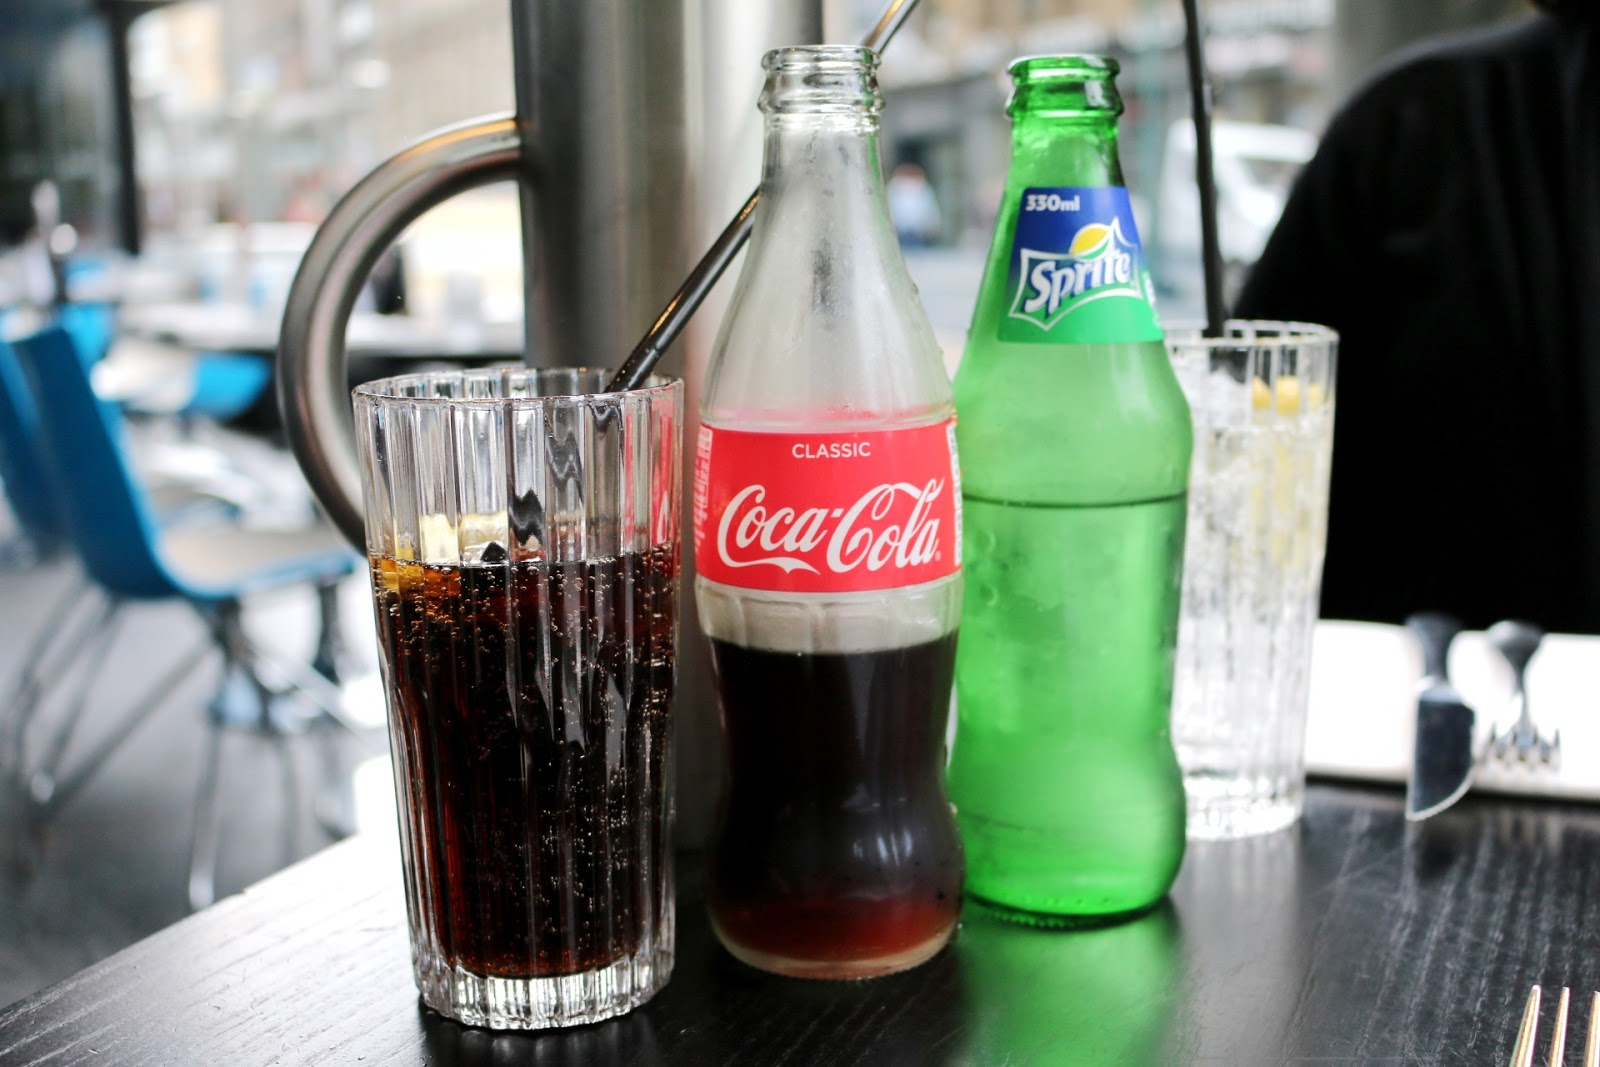 Close up of a bottle of coca-cola and a bottle of sprite. Both are glass bottles